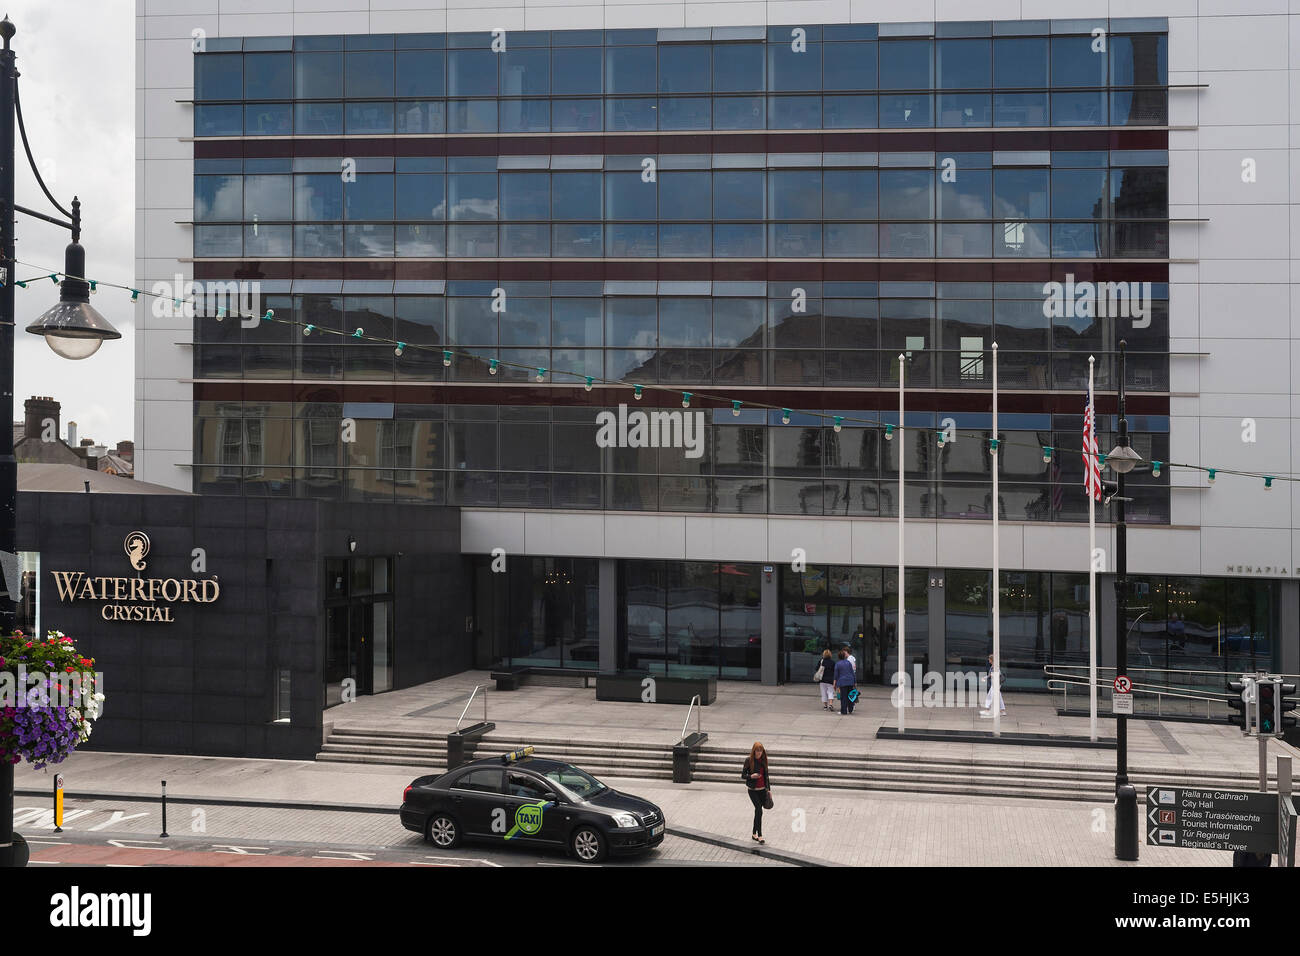 Ireland, Waterford, Waterford Crystal building - Stock Image